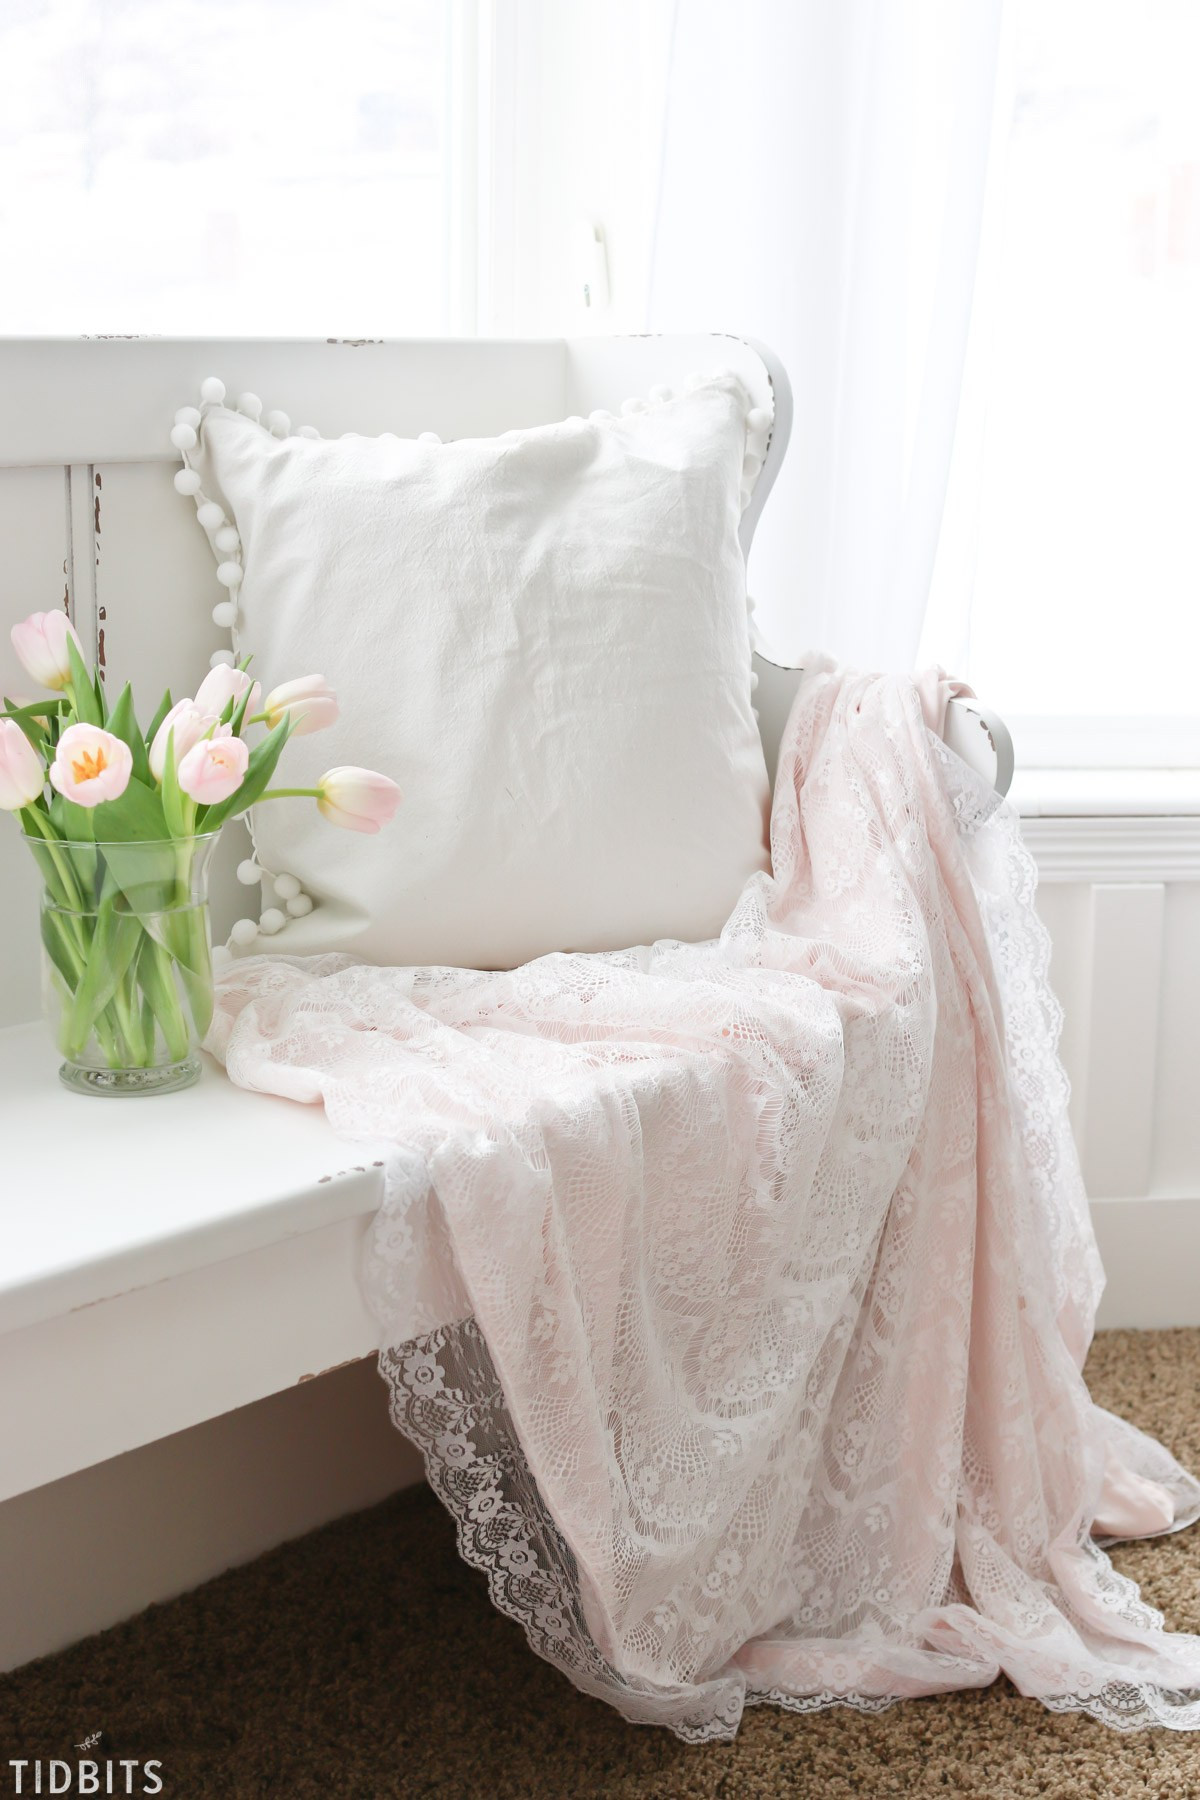 DIY Valentines Lace Throw Blanket Tidbits